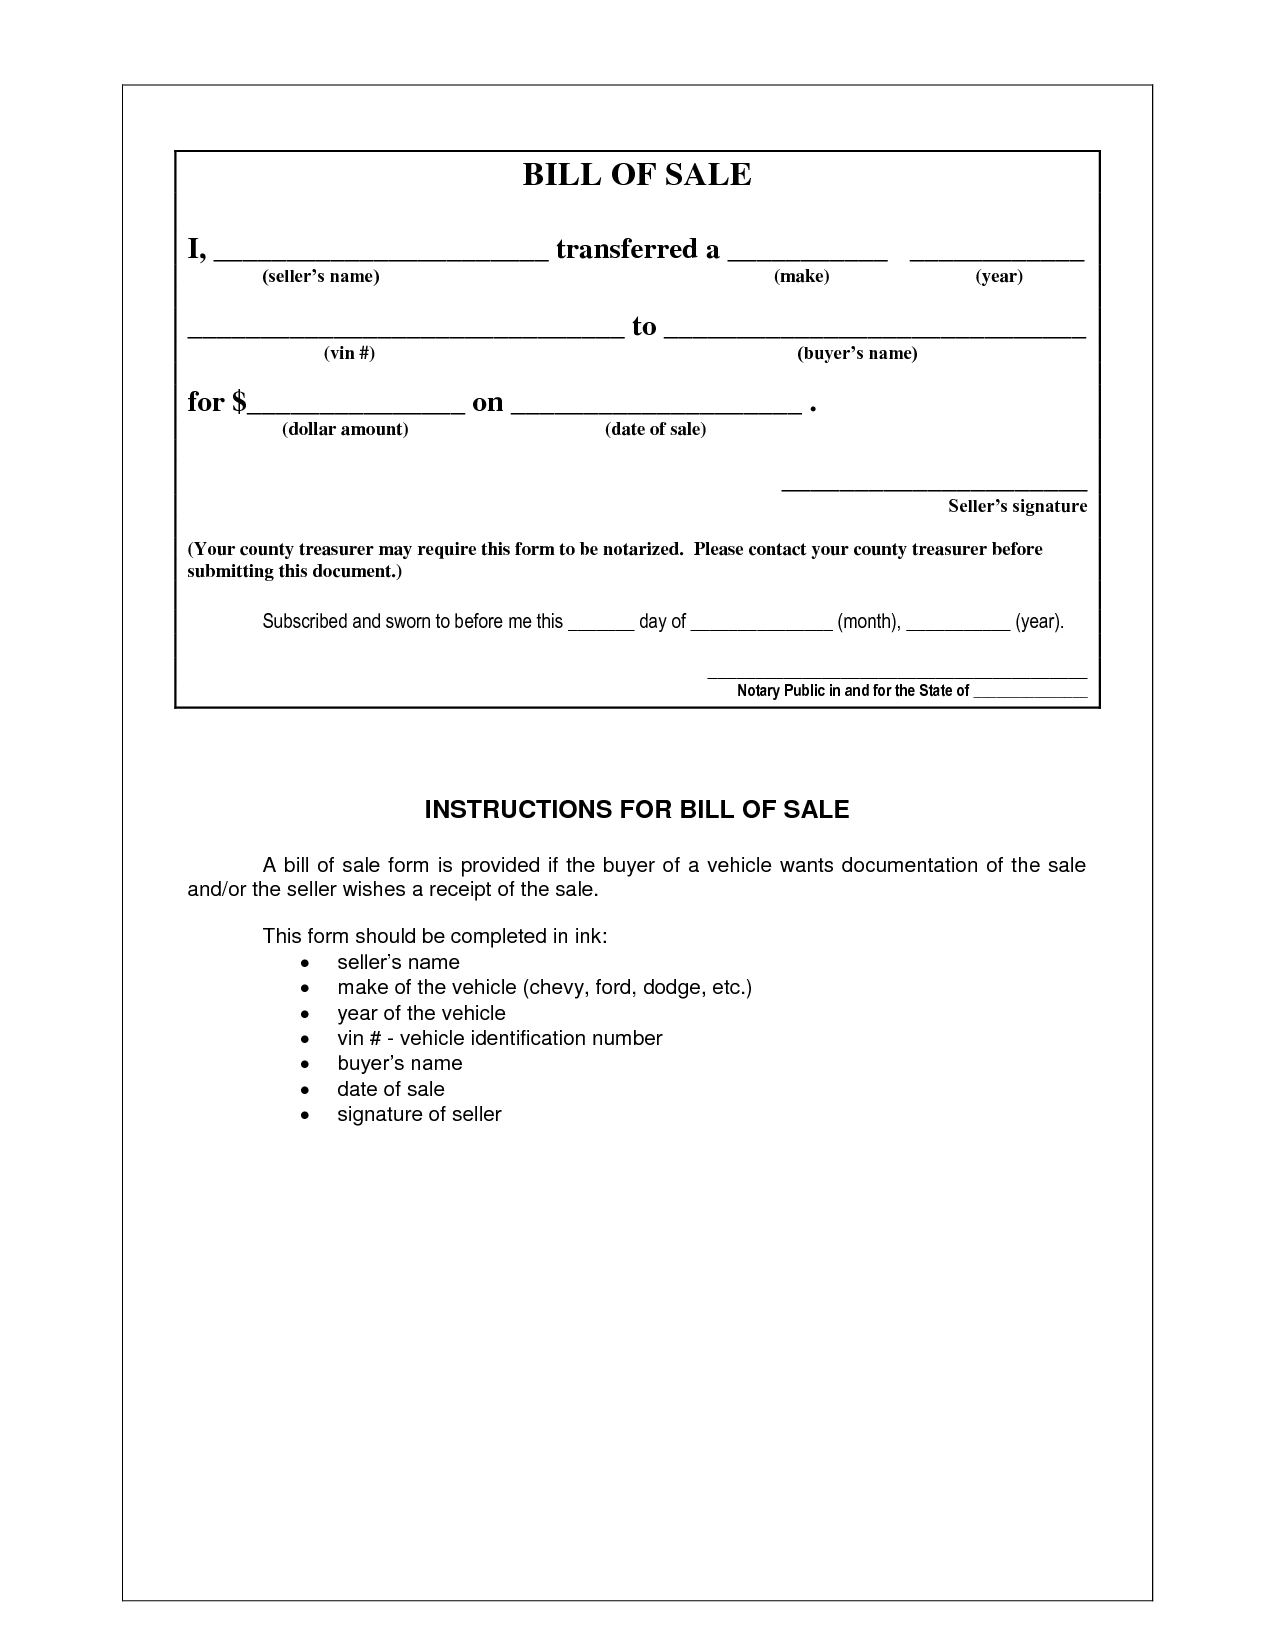 Bill Of Sale Example >> Picture Of Example Bill Of Sale Form Photo Gallery